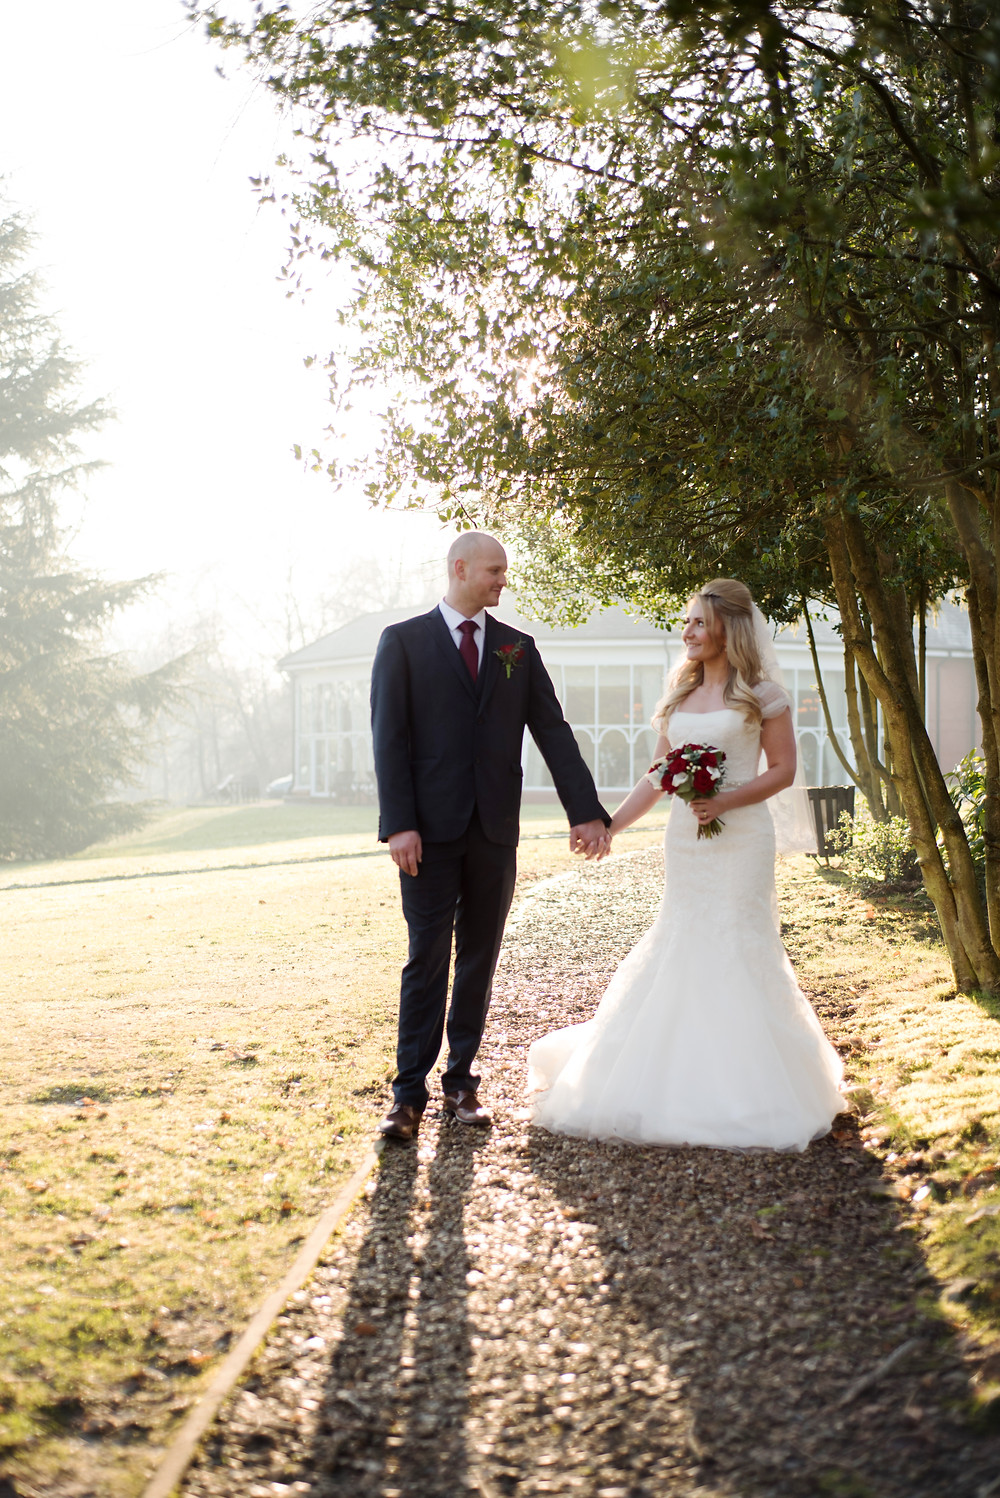 bride and groom at Macdonald Kilhey Court,Wigan